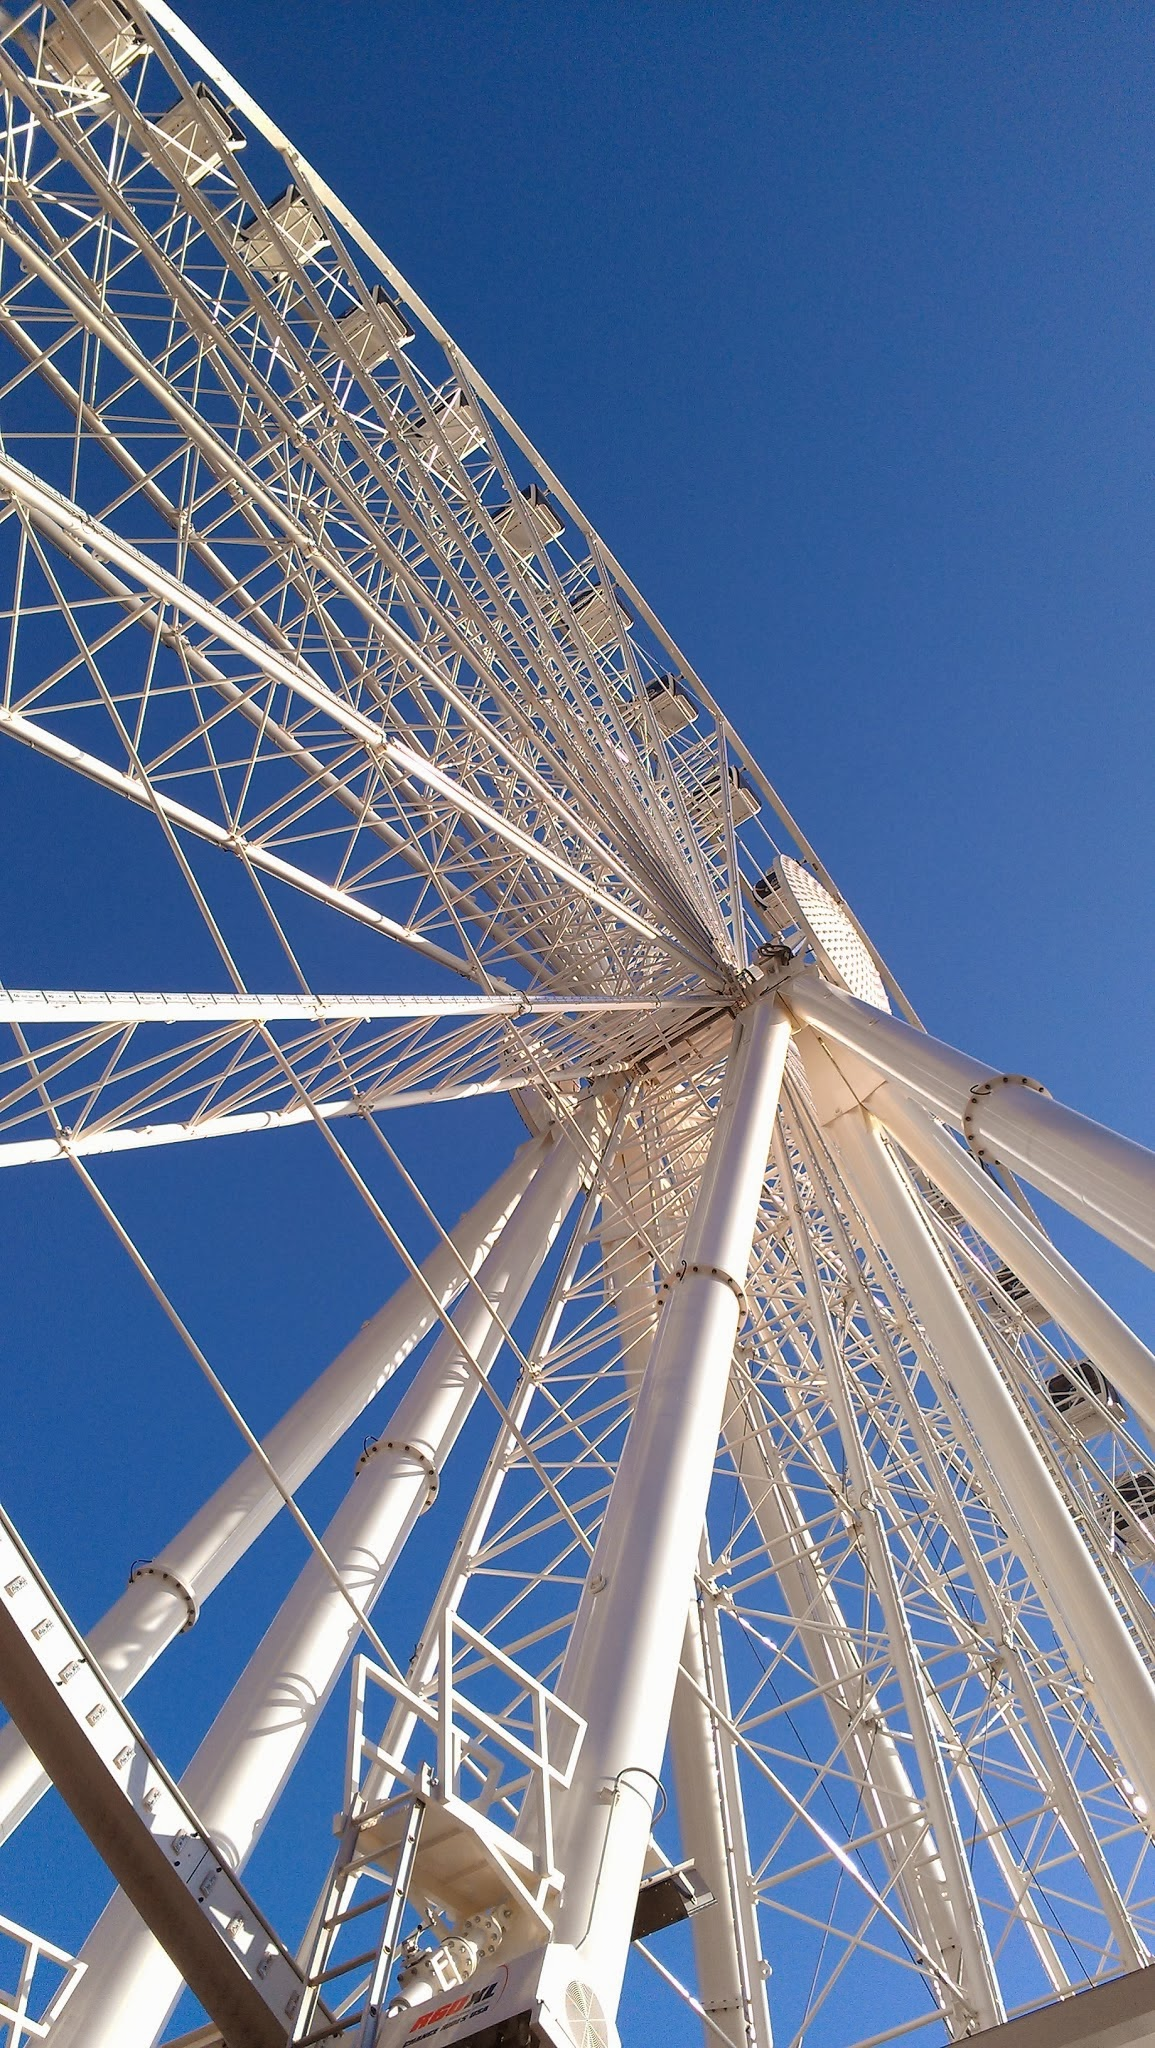 A large painted white metal ferris wheel against a blue sky